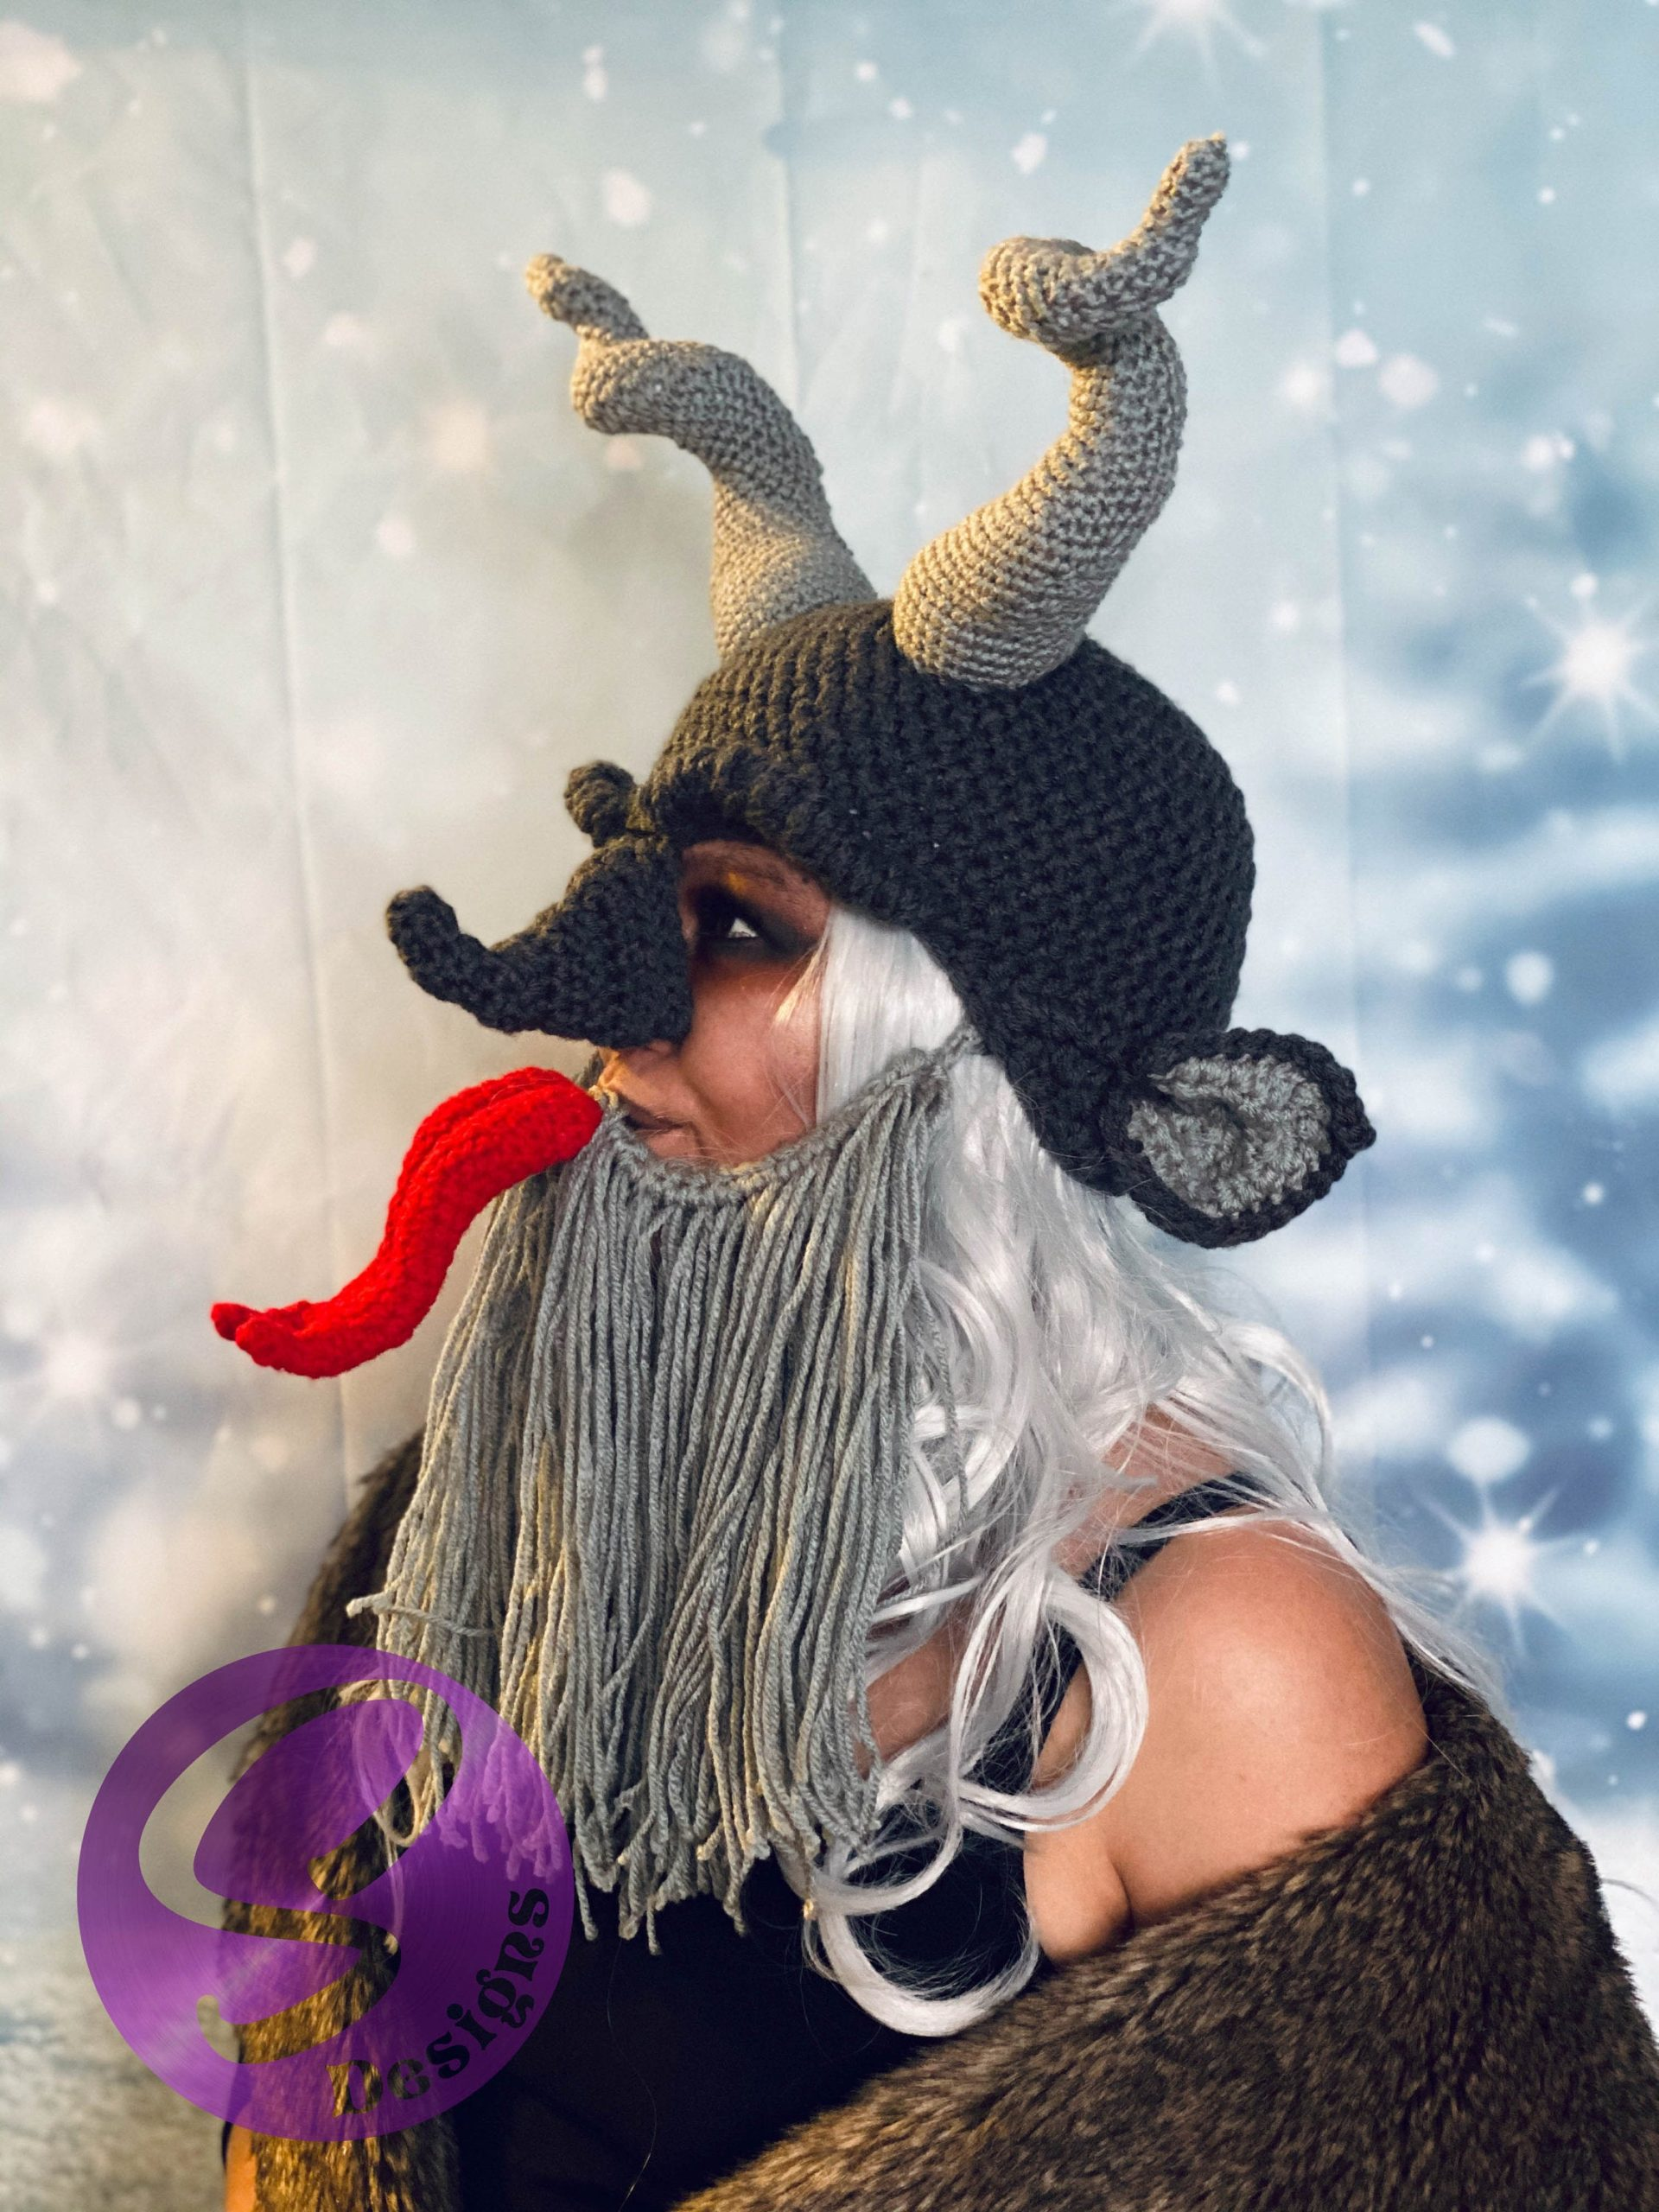 Crochet a Quirky Krampus Cosplay For Christmas ... He KNOWS When You've Been BAD.